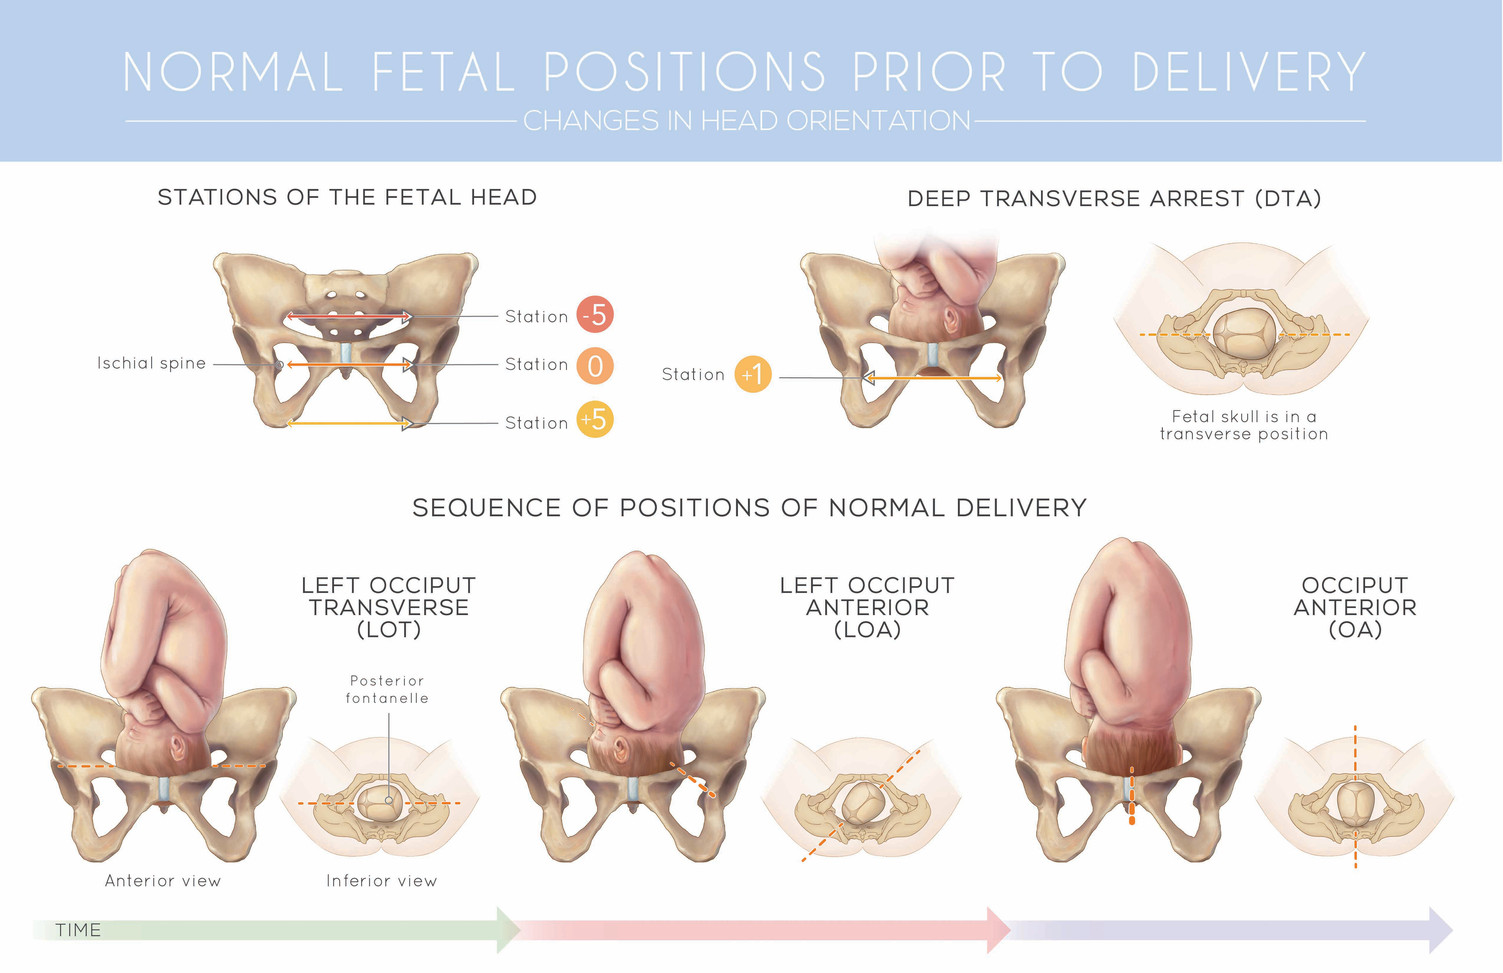 Normal Fetal Positions Prior to Delivery